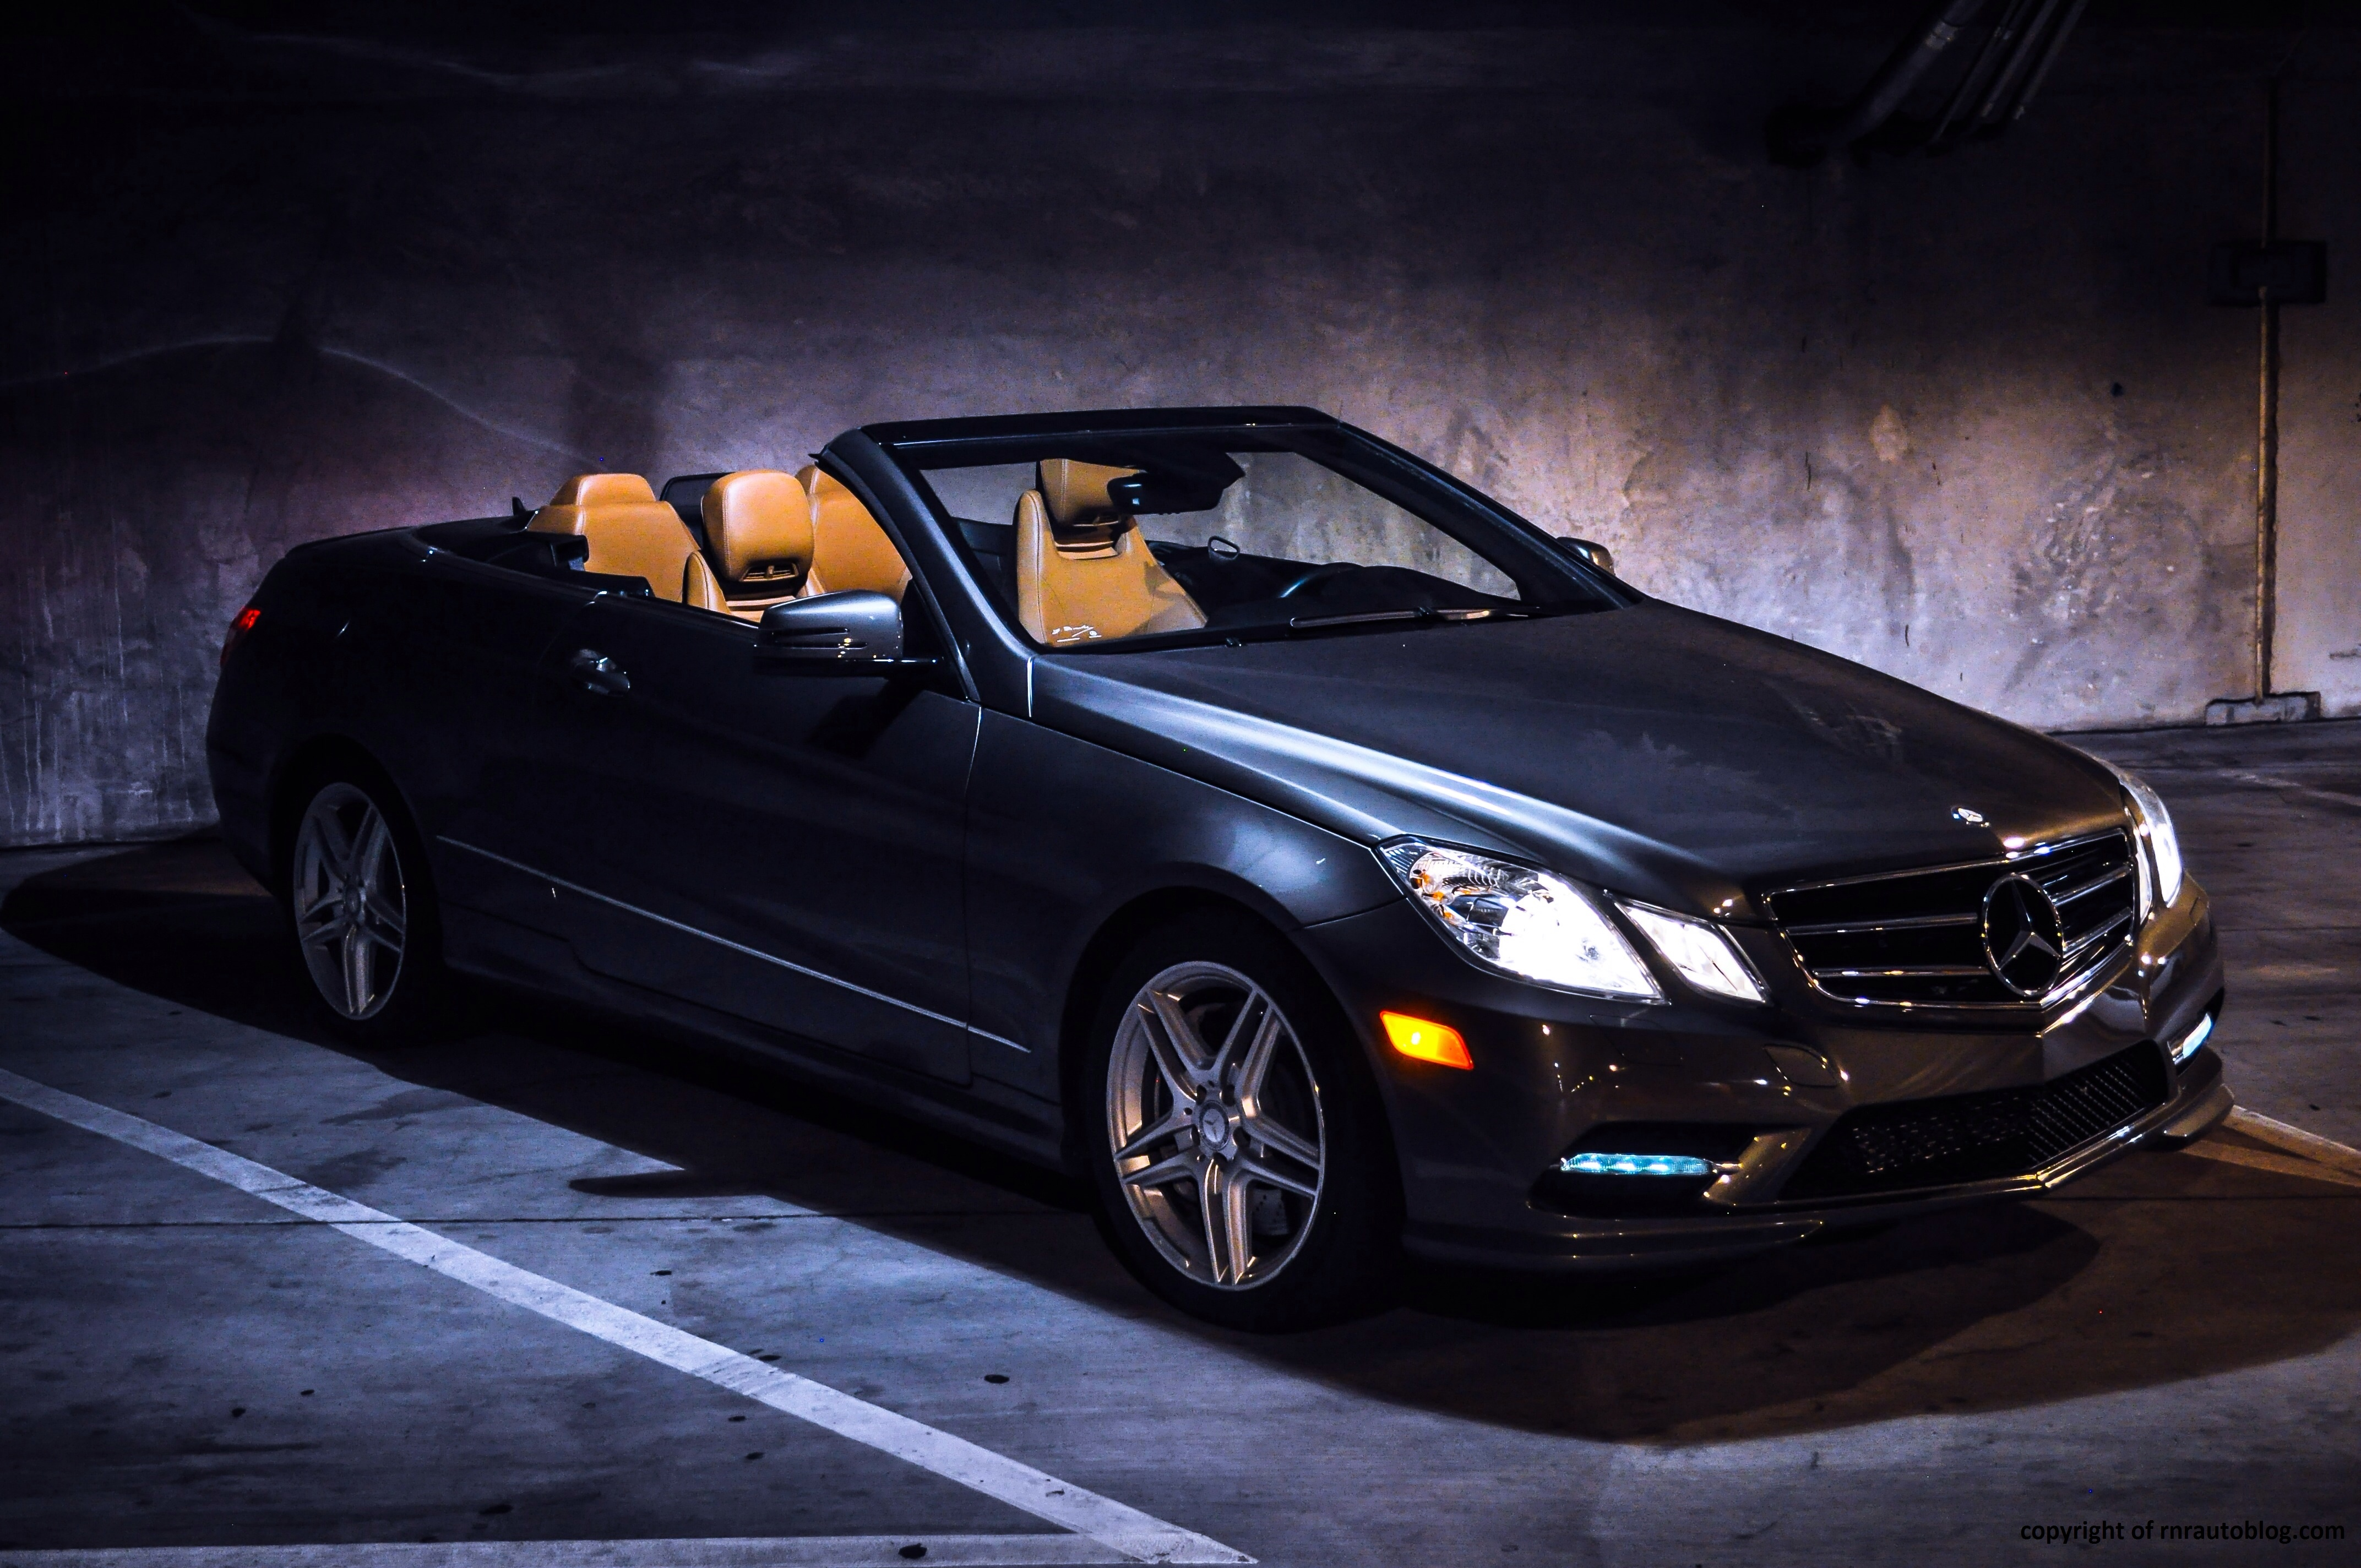 mercedes cabriolet is driven s getty and near national photos great park knoxville mercedesbenz ag mountains pictures ags images picture stock smoky in daimler benz